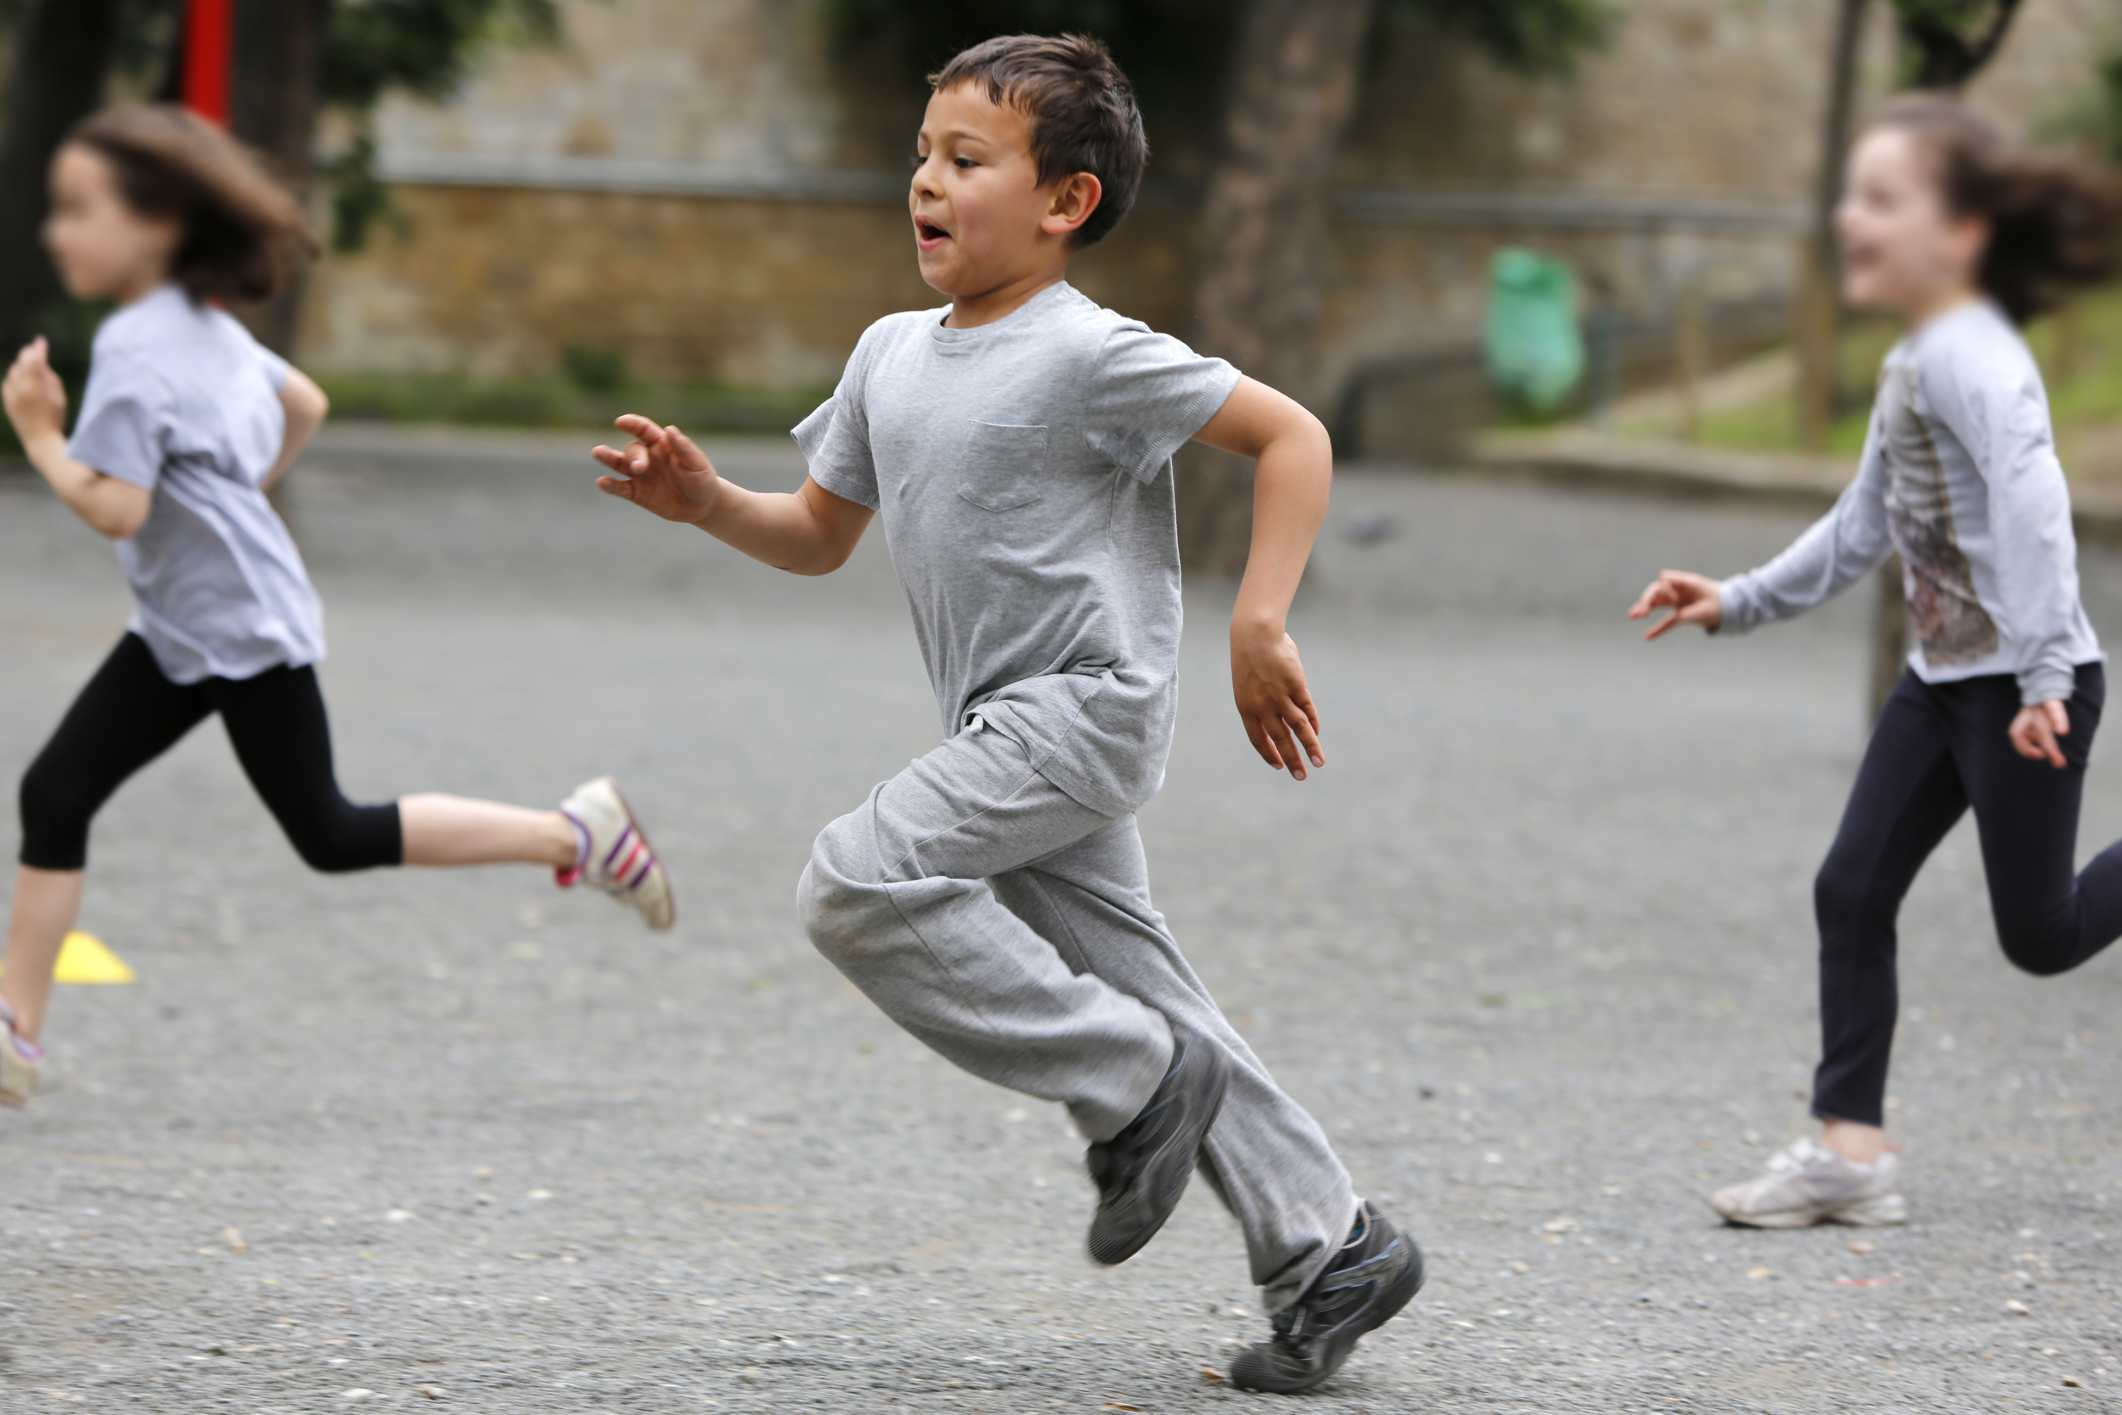 Young Kids Are Being Shuffled From One Activity To Another In >> Easy And Simple Exercises For Kids